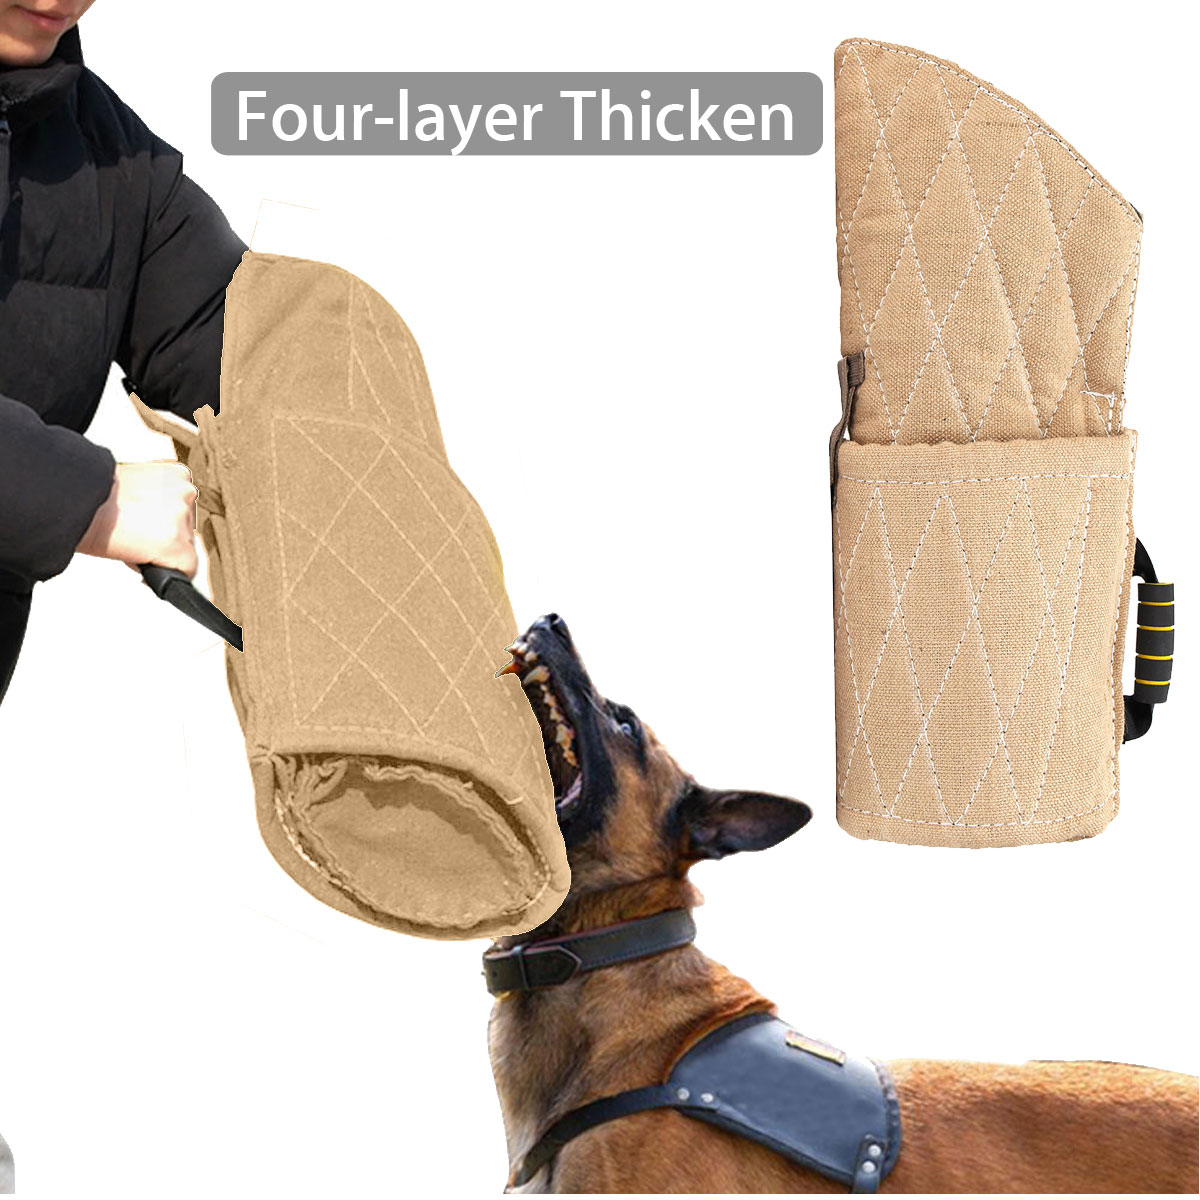 LILI Fibre Dog Training Bite Sleeve Grip Sleeve Tug Arm Protection For German Shepherd Young PetLILI Fibre Dog Training Bite Sleeve Grip Sleeve Tug Arm Protection For German Shepherd Young Pet